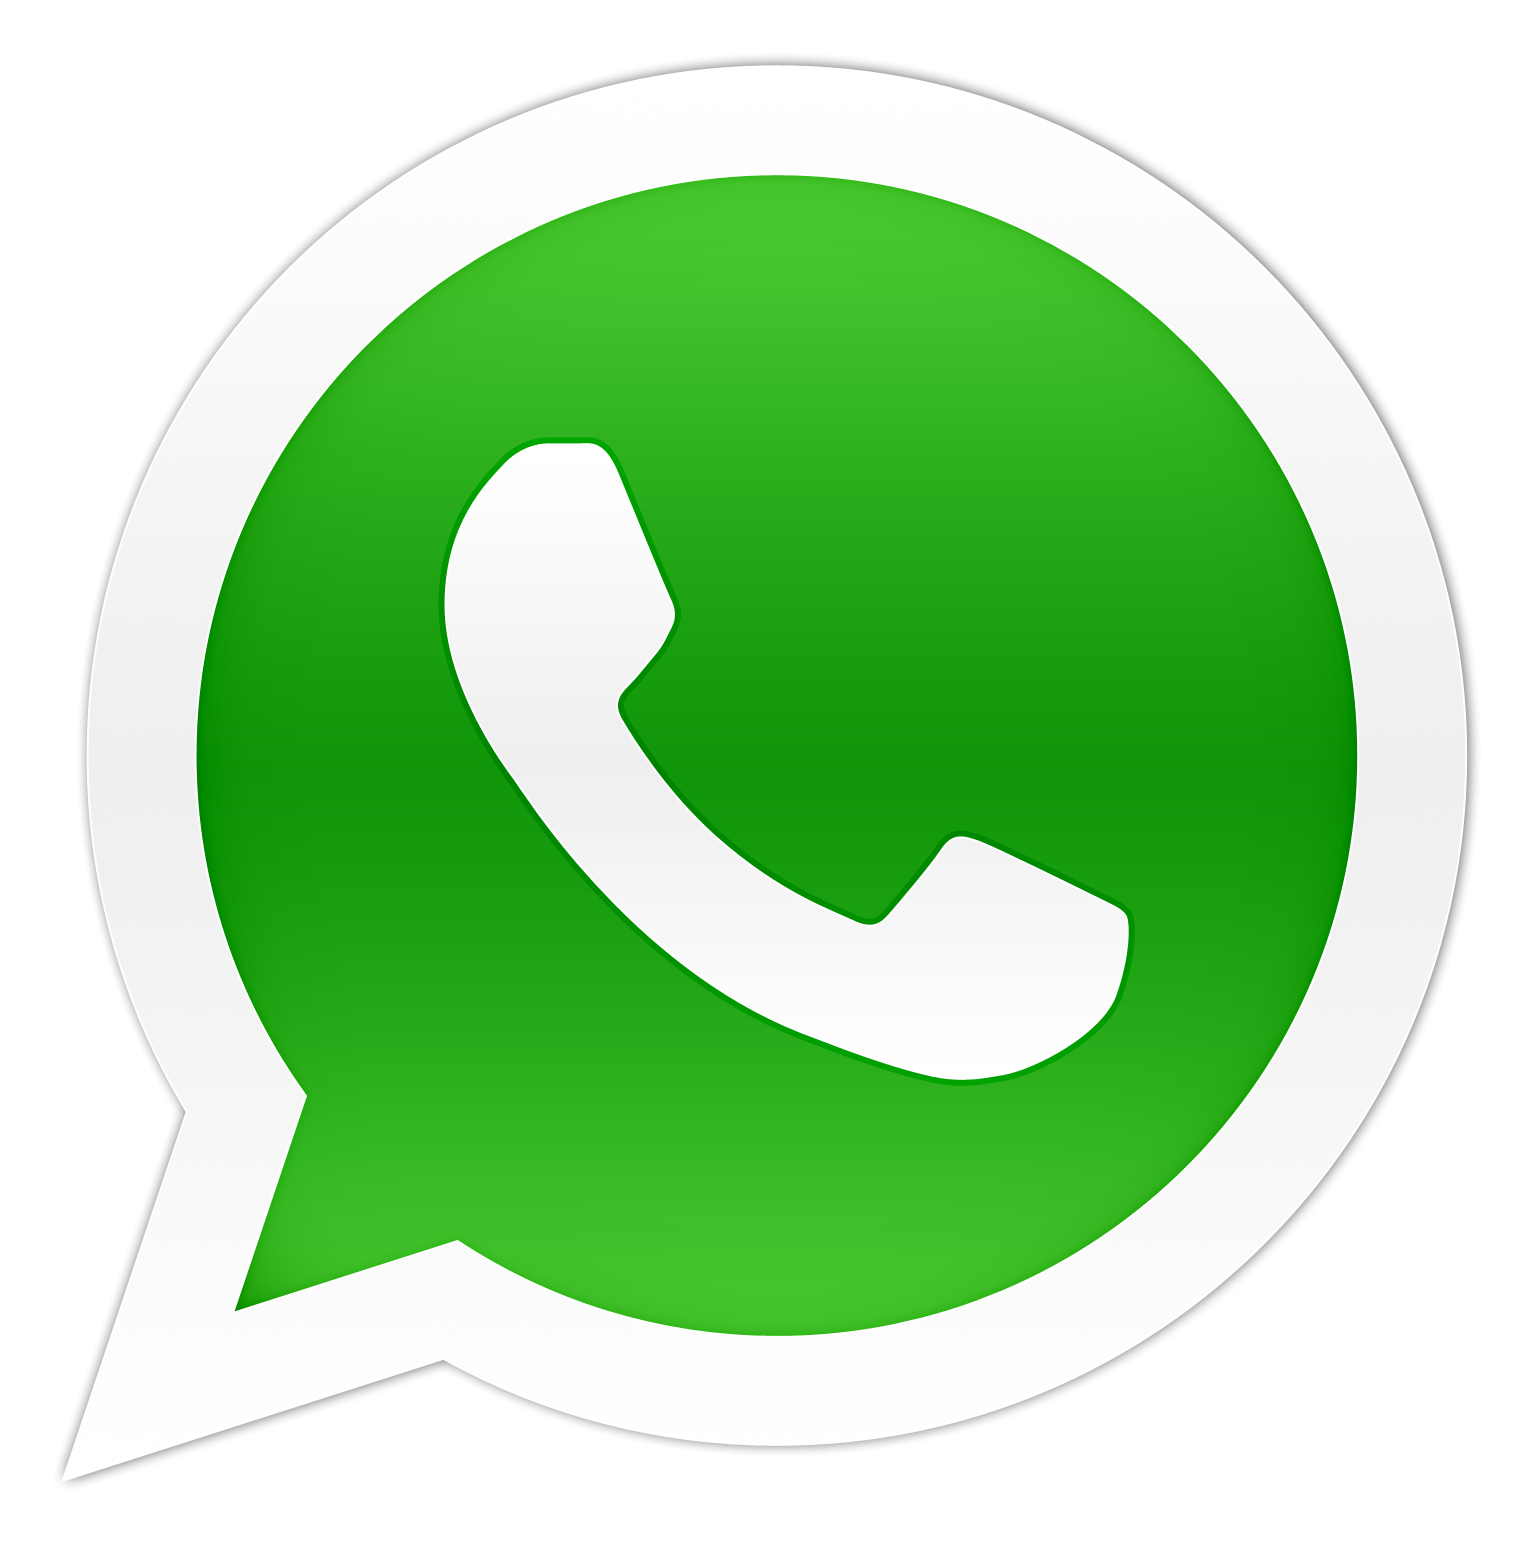 whatsapp logo icone